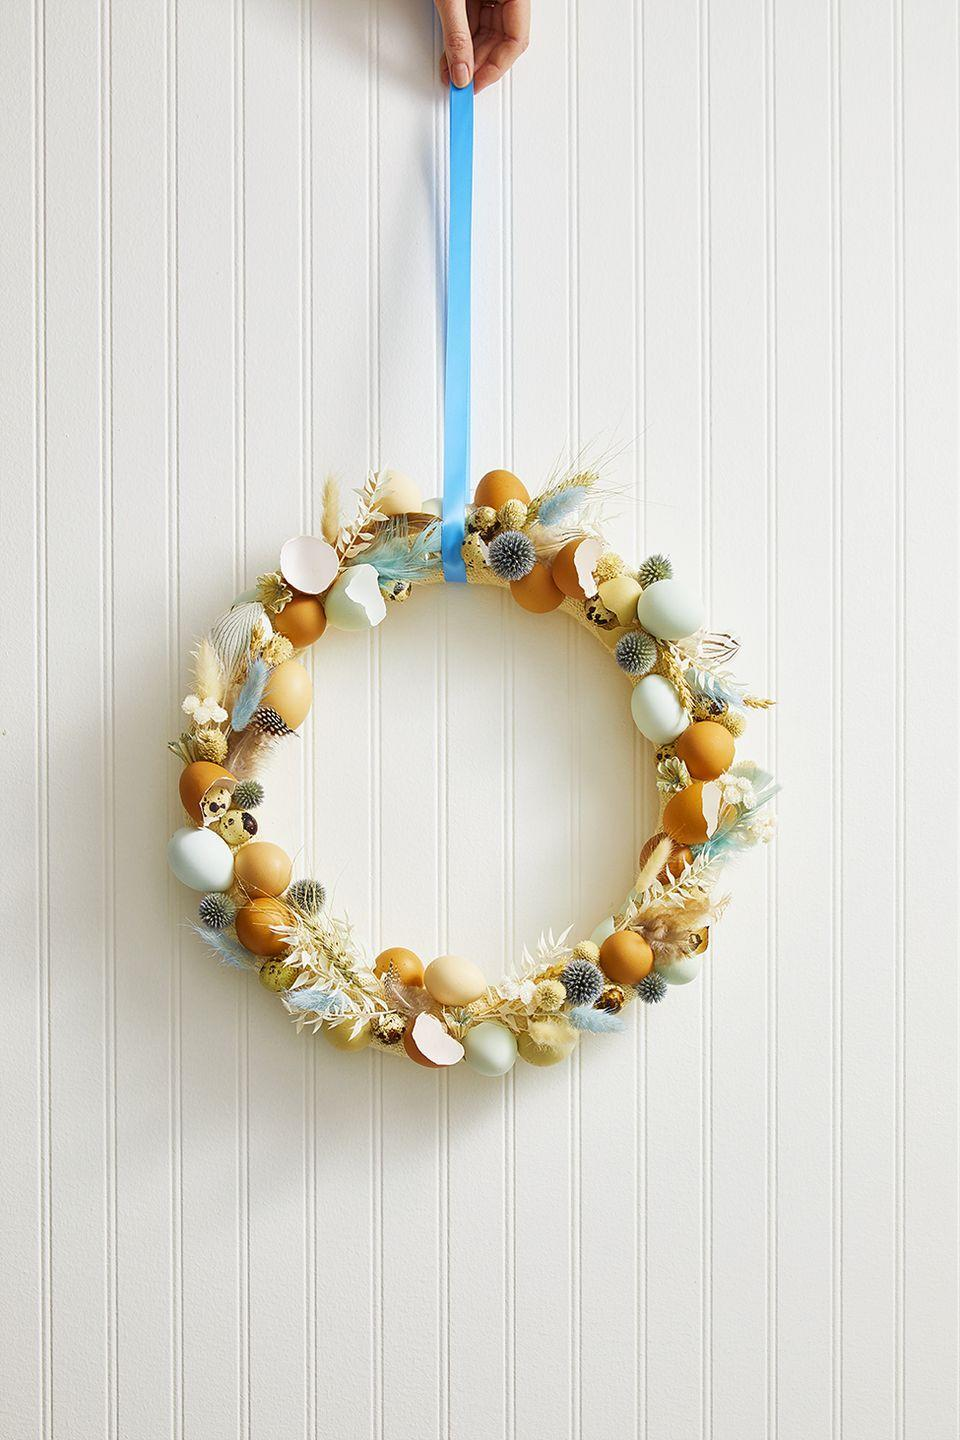 """<p>More subtle than pastel options, this wreath leans on Mother Nature's gorgeous hues — Robin's egg blue, cream, and brown — to liven up your front door. To make, wrap a foam wreath form with burlap and attach broken egg shells, quail eggs, feathers, dried leaves, and flowers until the entire wreath is covered. </p><p><strong>RELATED: </strong><a href=""""https://www.goodhousekeeping.com/holidays/easter-ideas/g977/spring-easter-wreaths/"""" rel=""""nofollow noopener"""" target=""""_blank"""" data-ylk=""""slk:The Prettiest Easter Wreaths to Hang"""" class=""""link rapid-noclick-resp"""">The Prettiest Easter Wreaths to Hang </a></p>"""